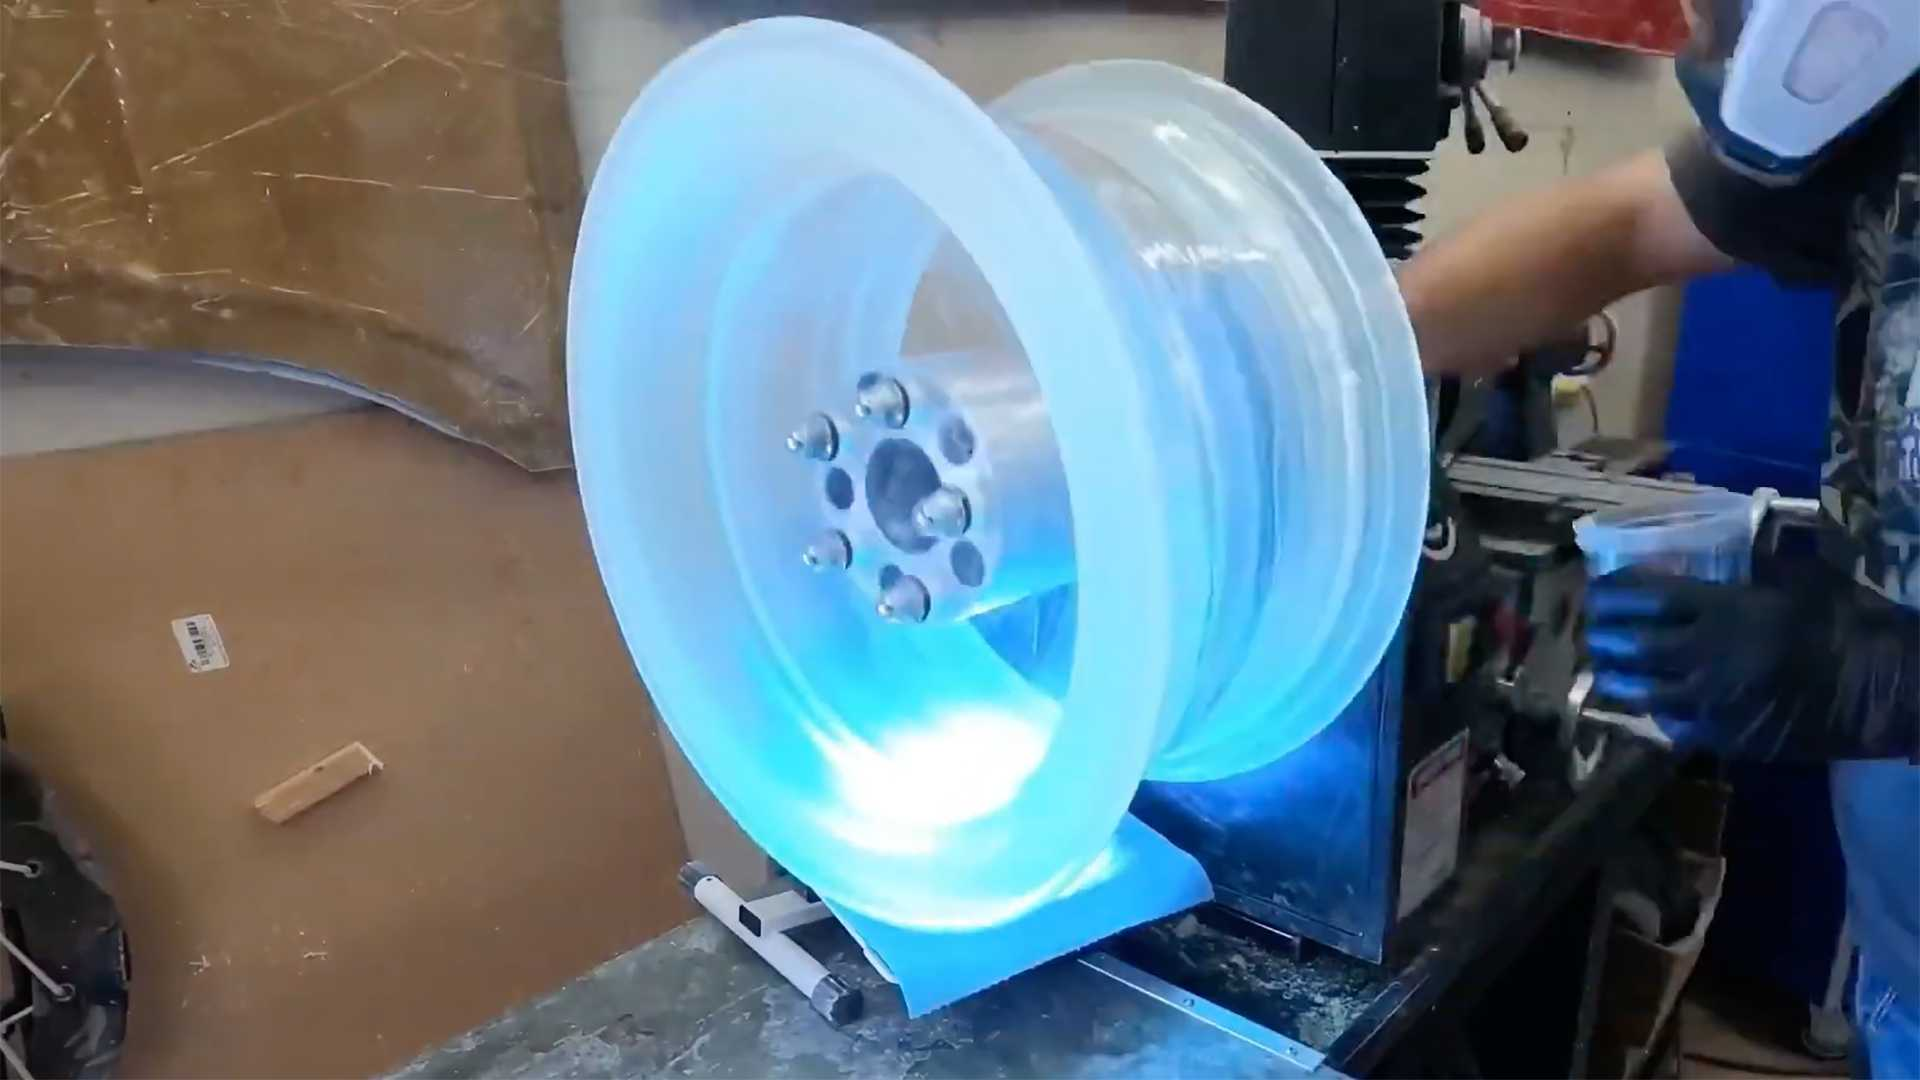 A car repairman from Michigan, USA, has found a way to produce spokeless car rims using clear epoxy. The video shows one such wheel fitted with LEDs for maximum eye candy.